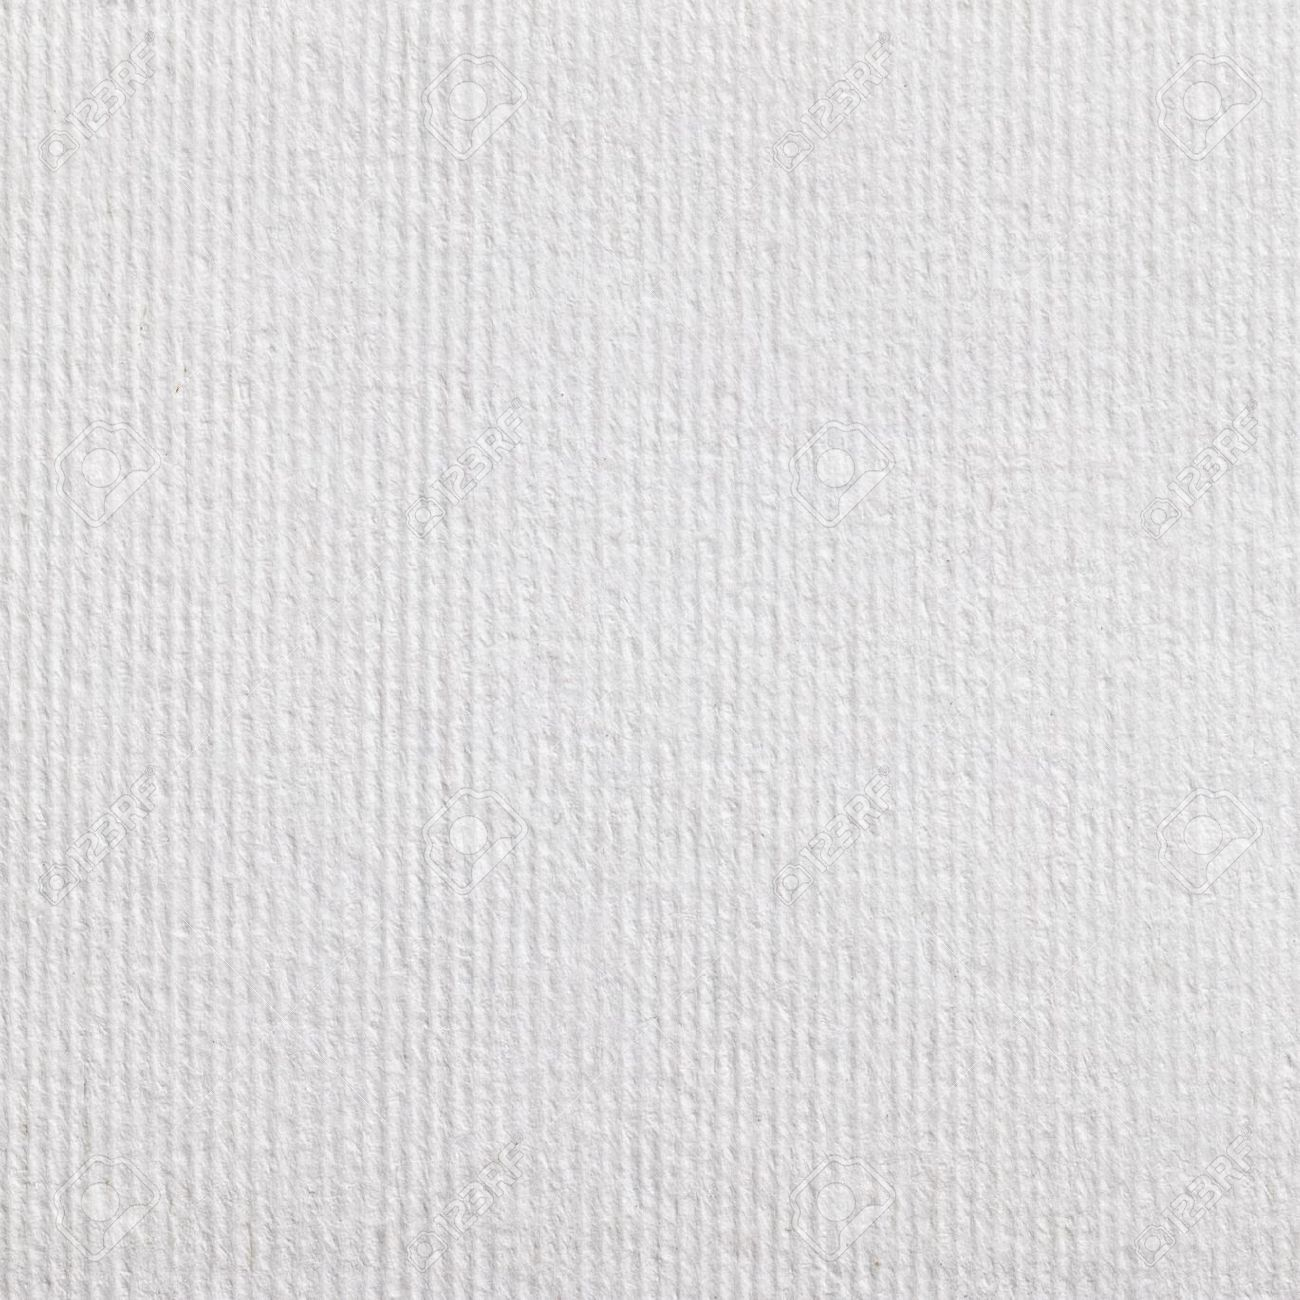 Art Paper Textured Background Stock Photo, Picture And Royalty ...